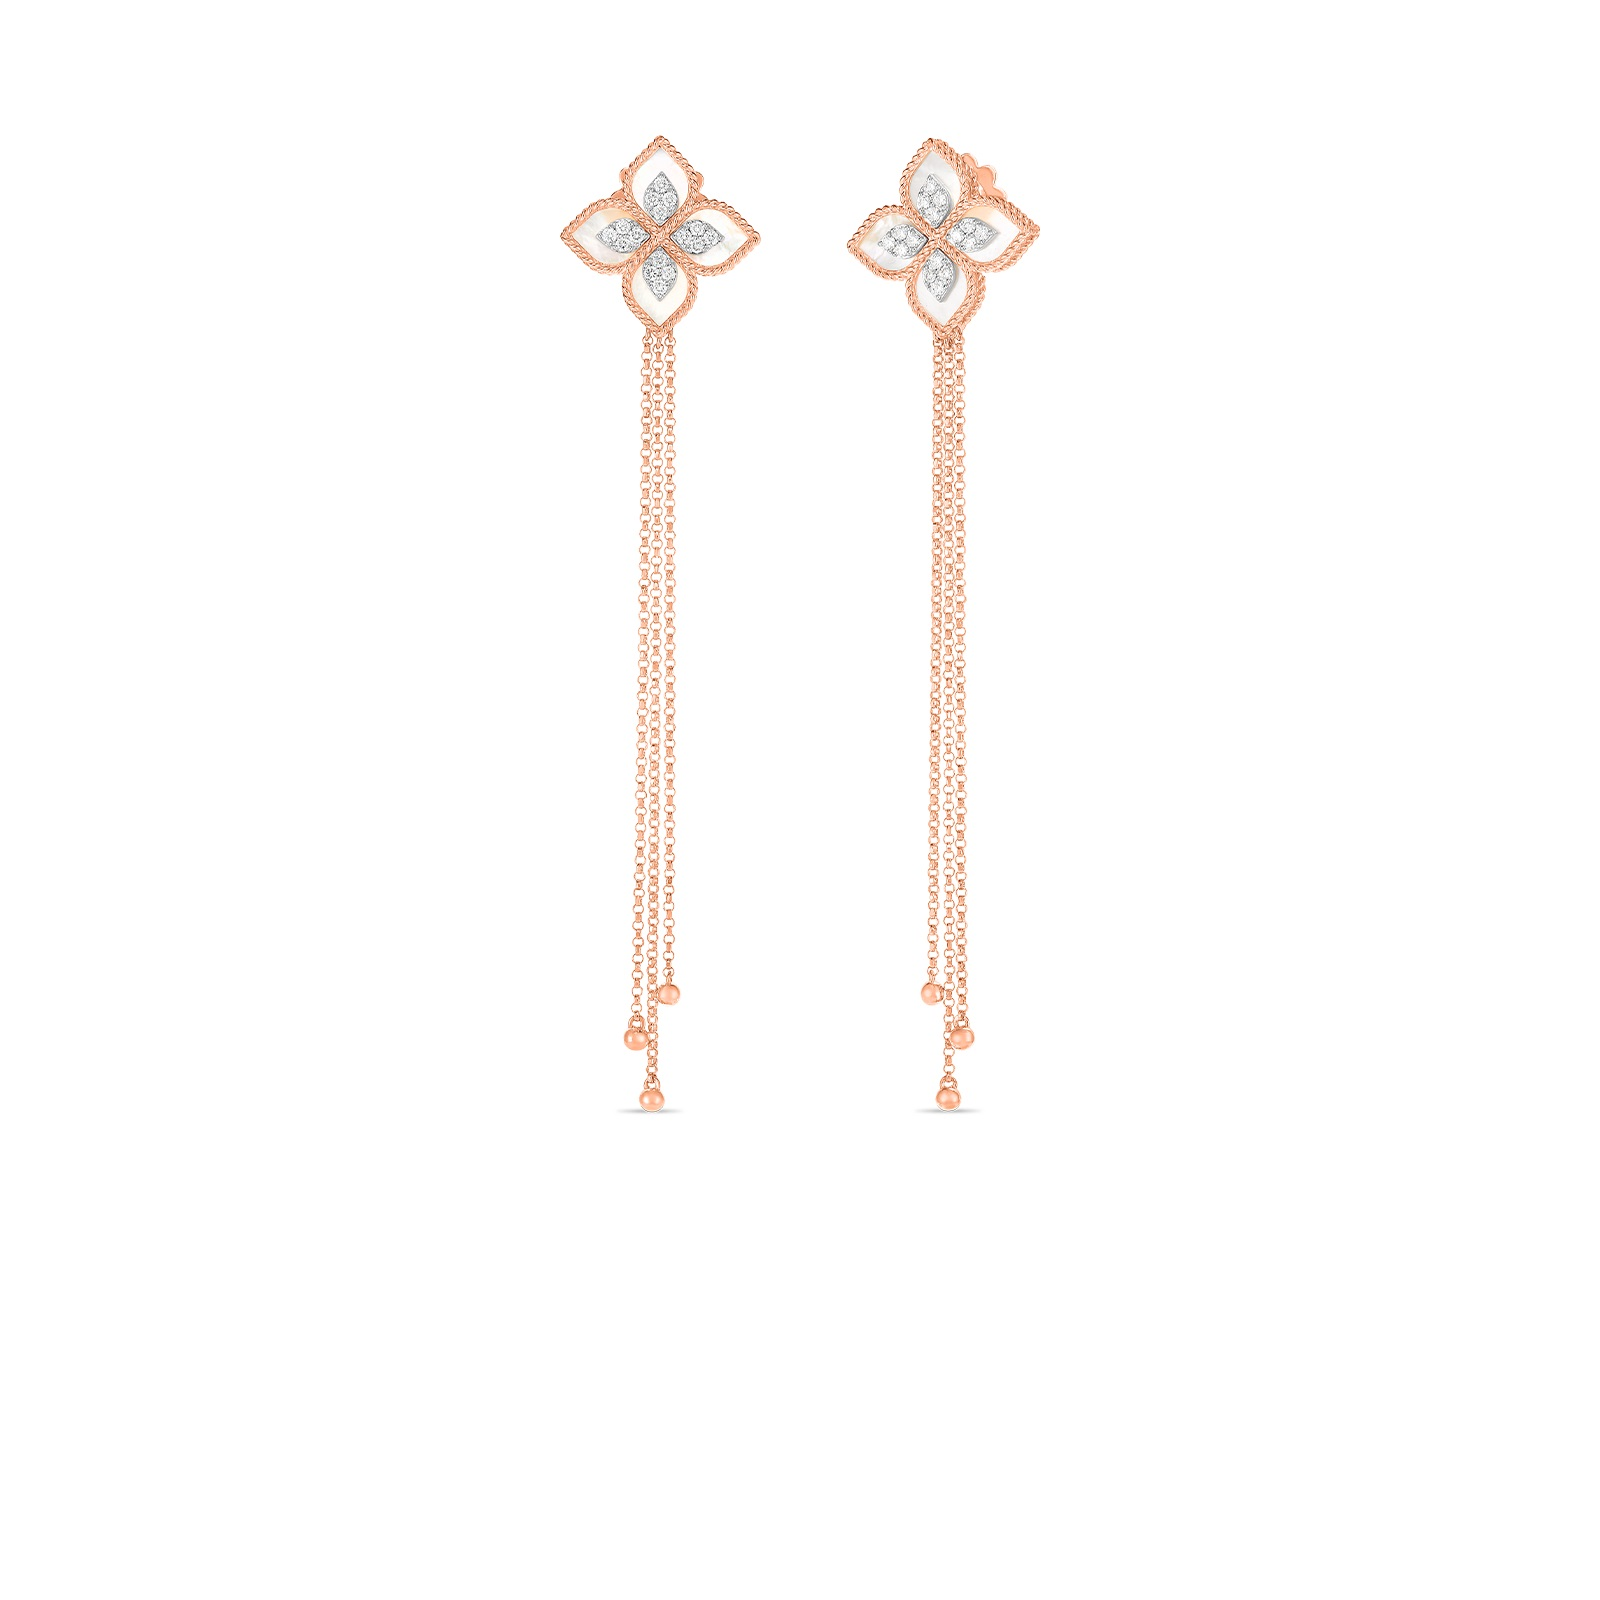 Roberto Coin 18k Rose Gold .34cts  Diamonds Gold Earrings with Stones 8882800AHERX